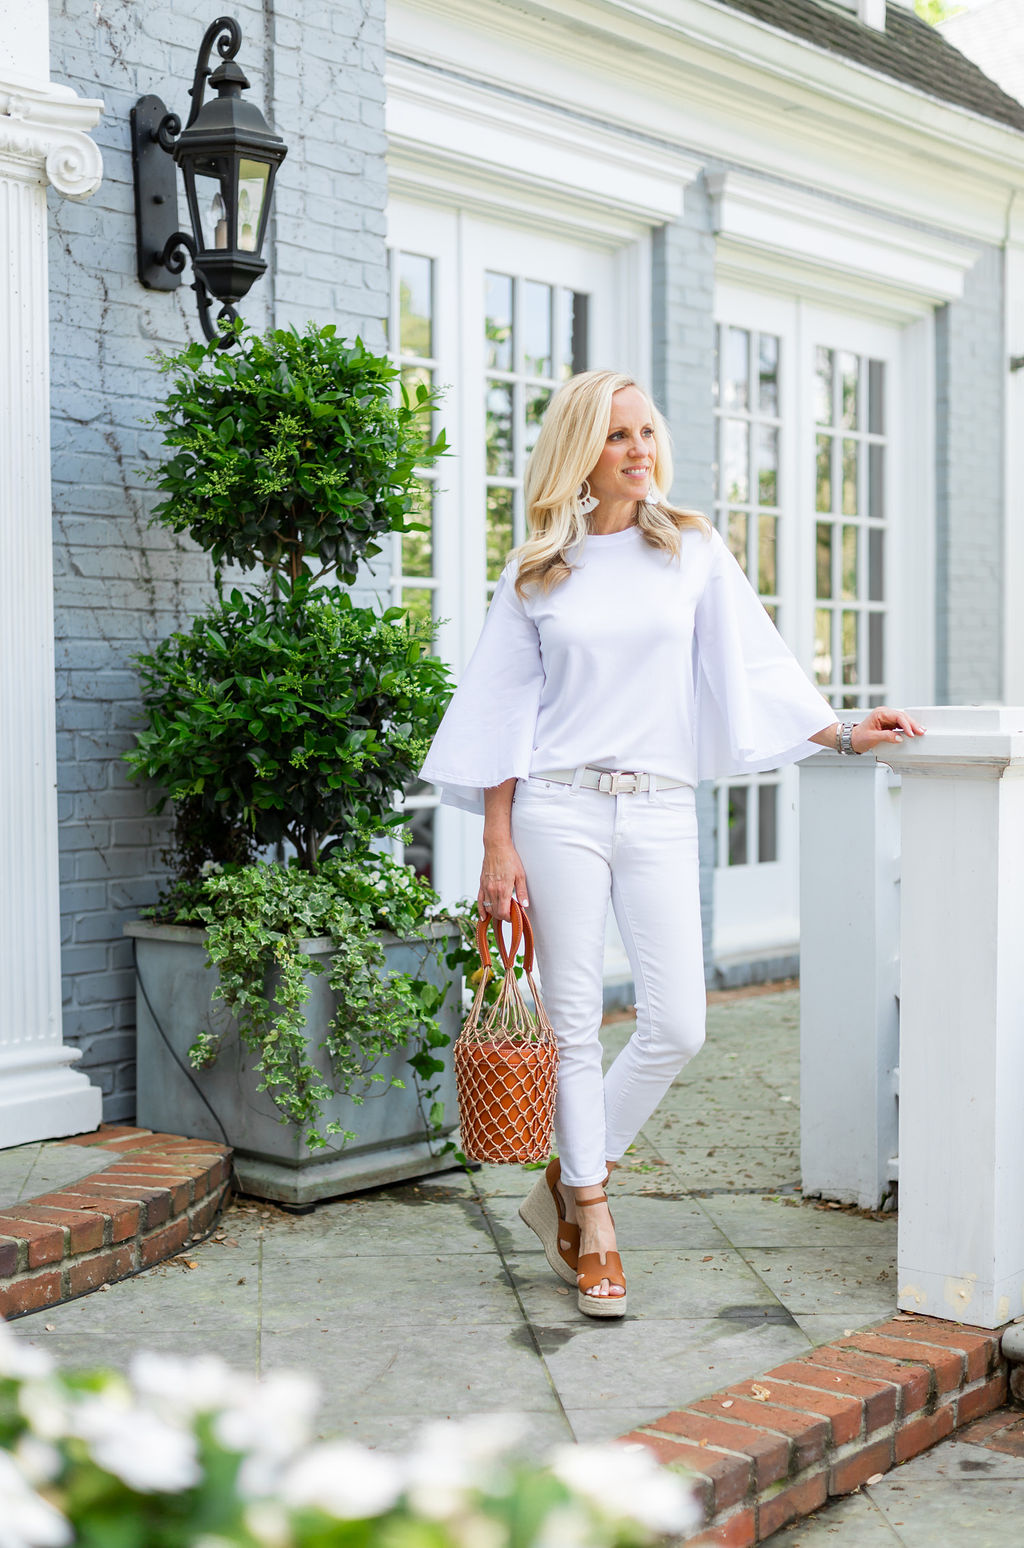 15 Great White Tops for Spring| Best White Tops for Spring